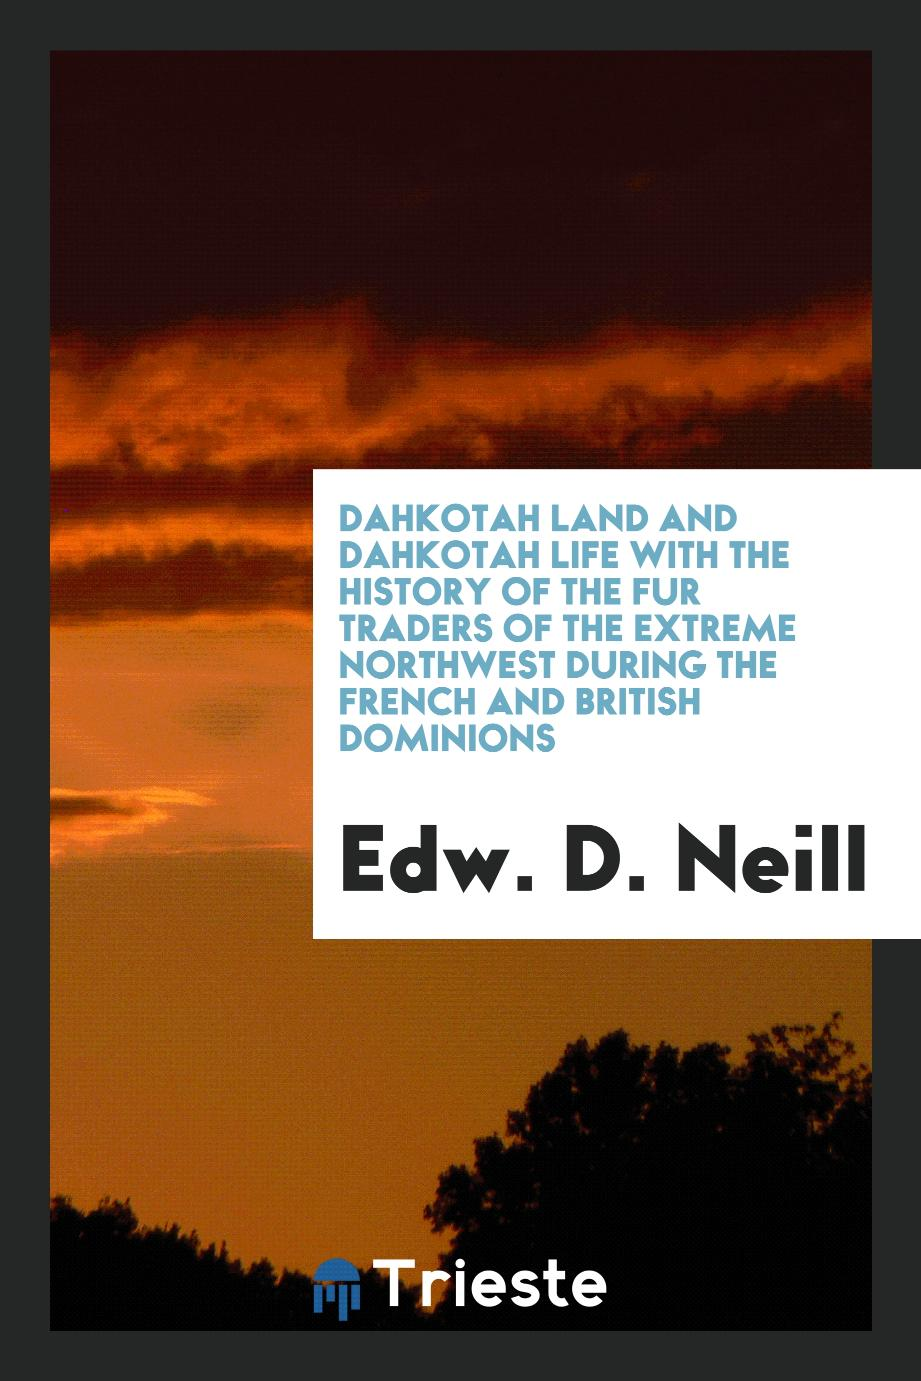 Dahkotah land and Dahkotah life with the history of the fur traders of the extreme northwest during the french and british dominions